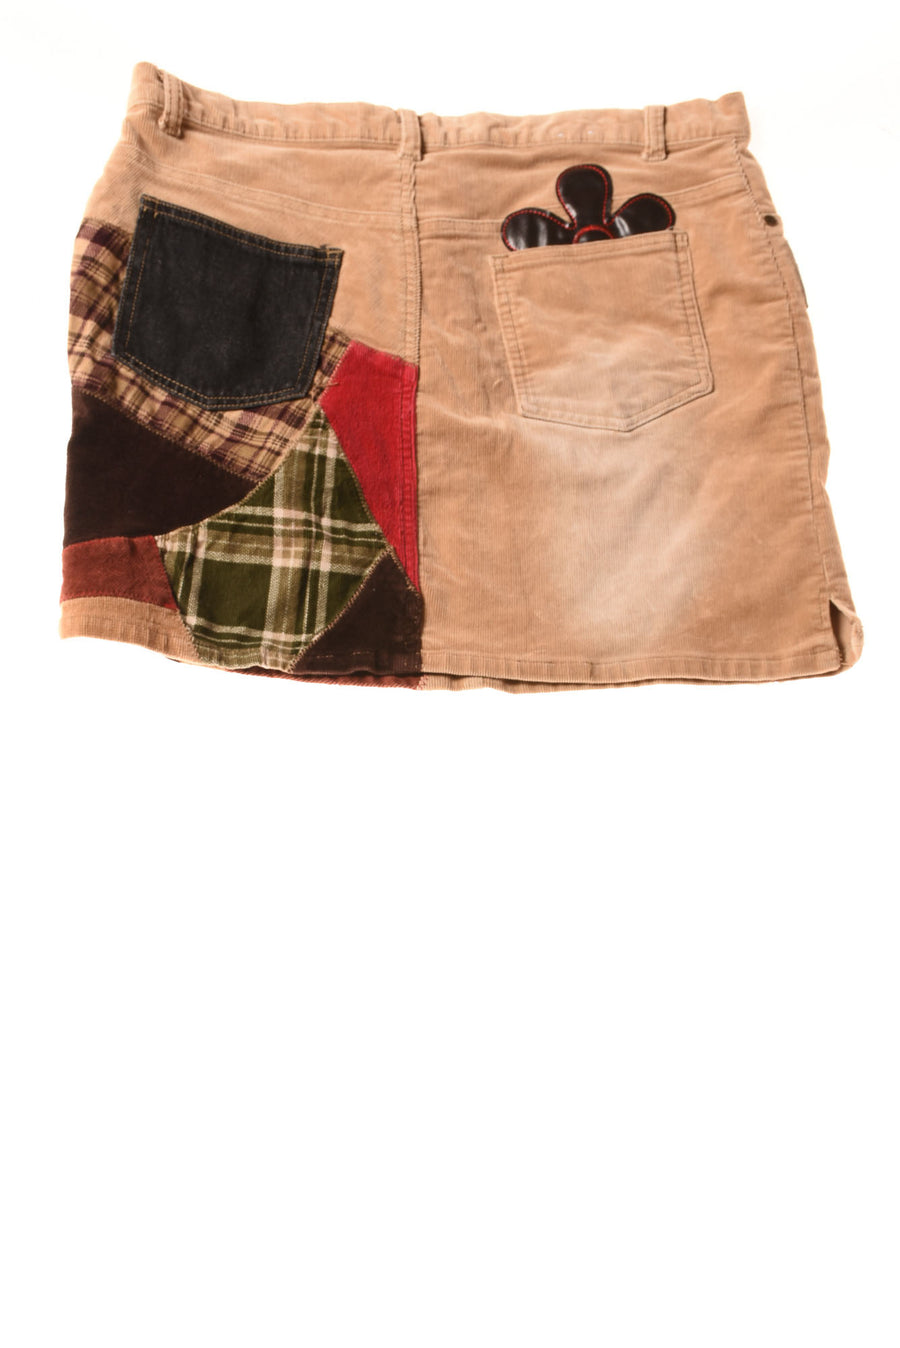 USED Gypsy Jeans Women's Skirt 9/10 Brown / Print